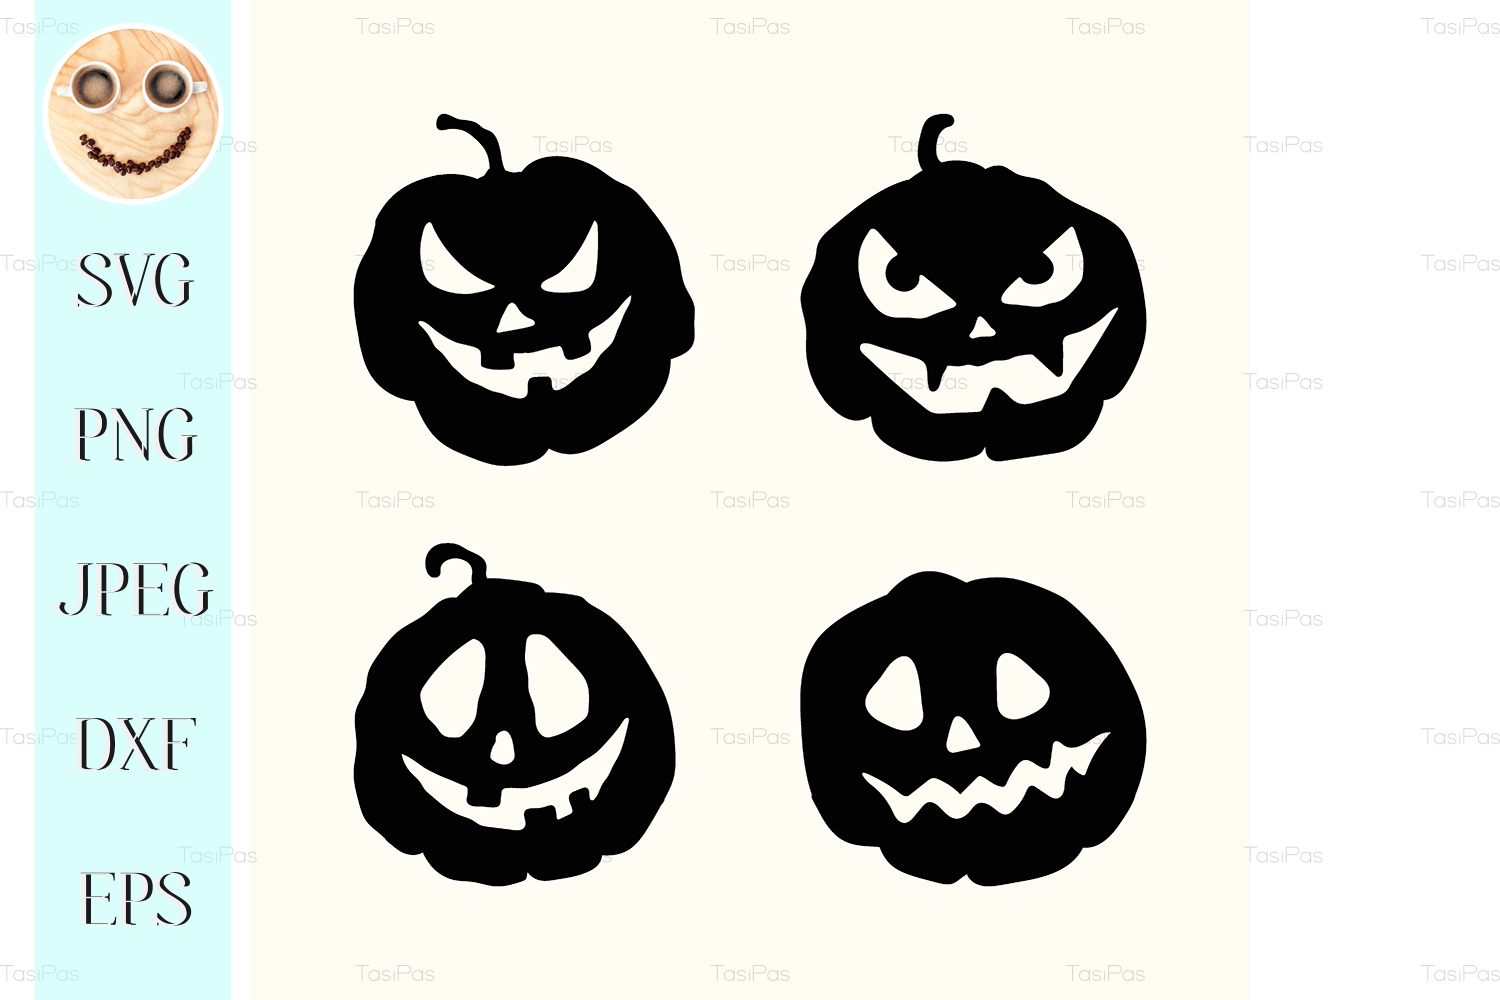 Download Free Halloween Silhouette Spooky Face Pumpkin Graphic By Tasipas for Cricut Explore, Silhouette and other cutting machines.